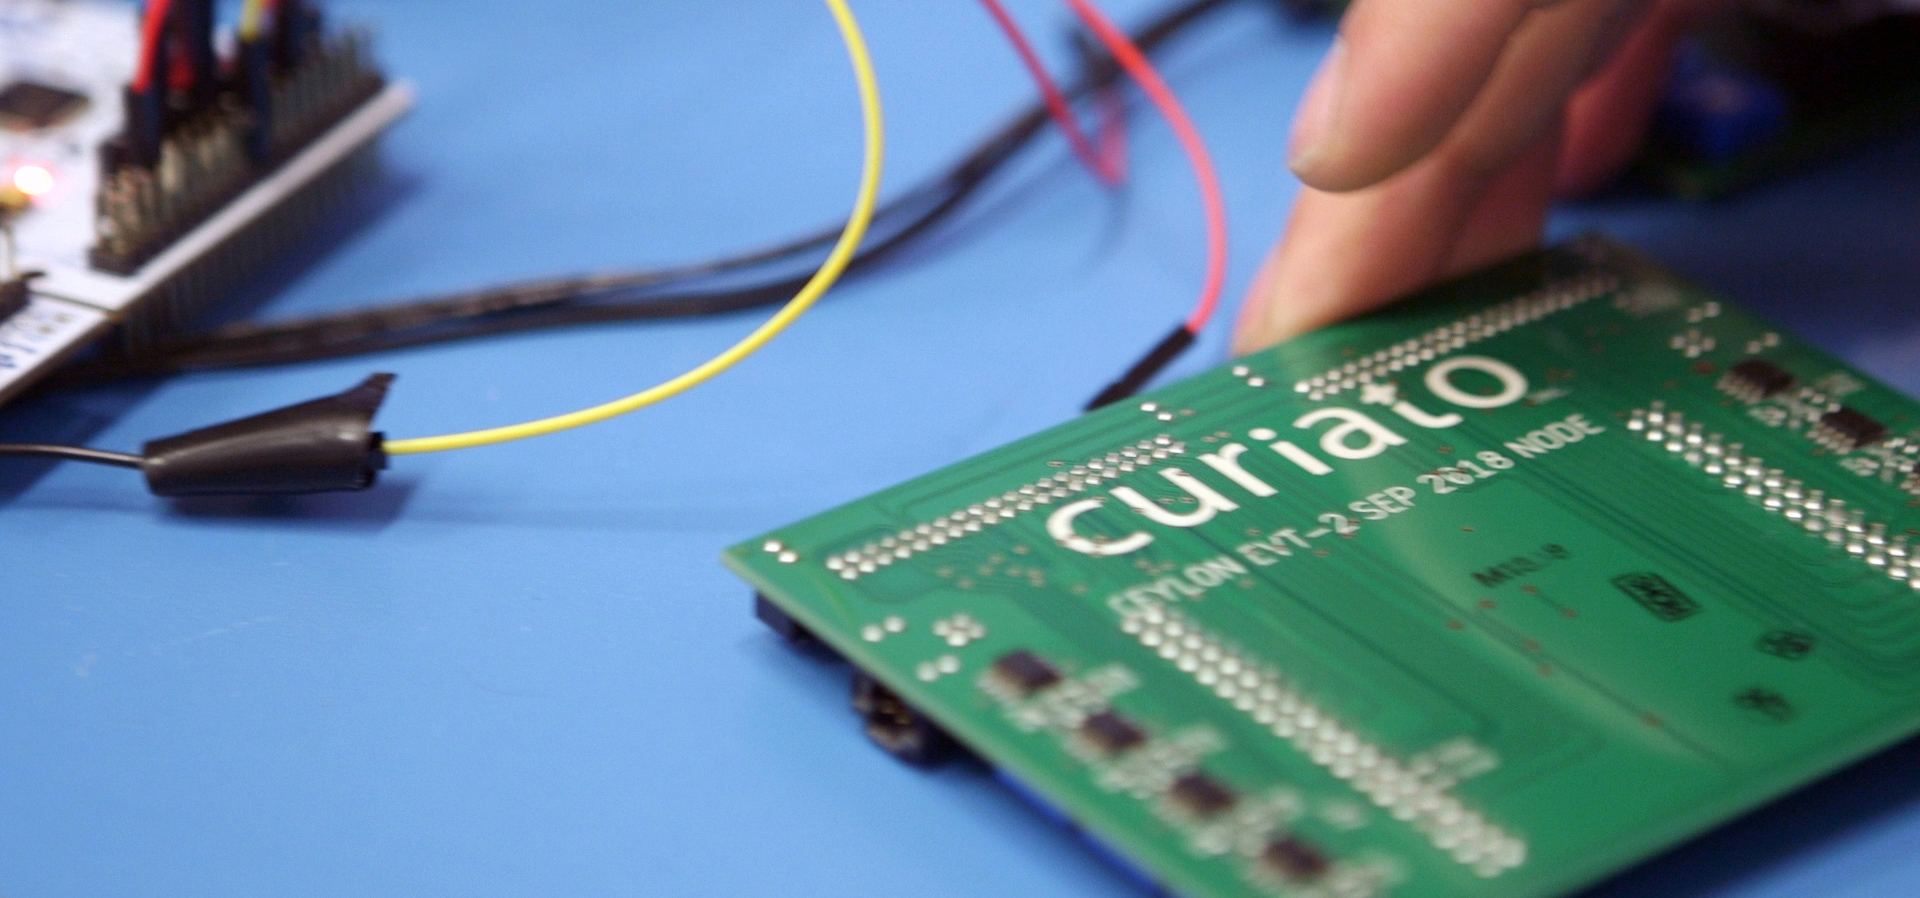 Curiato's green circuit board